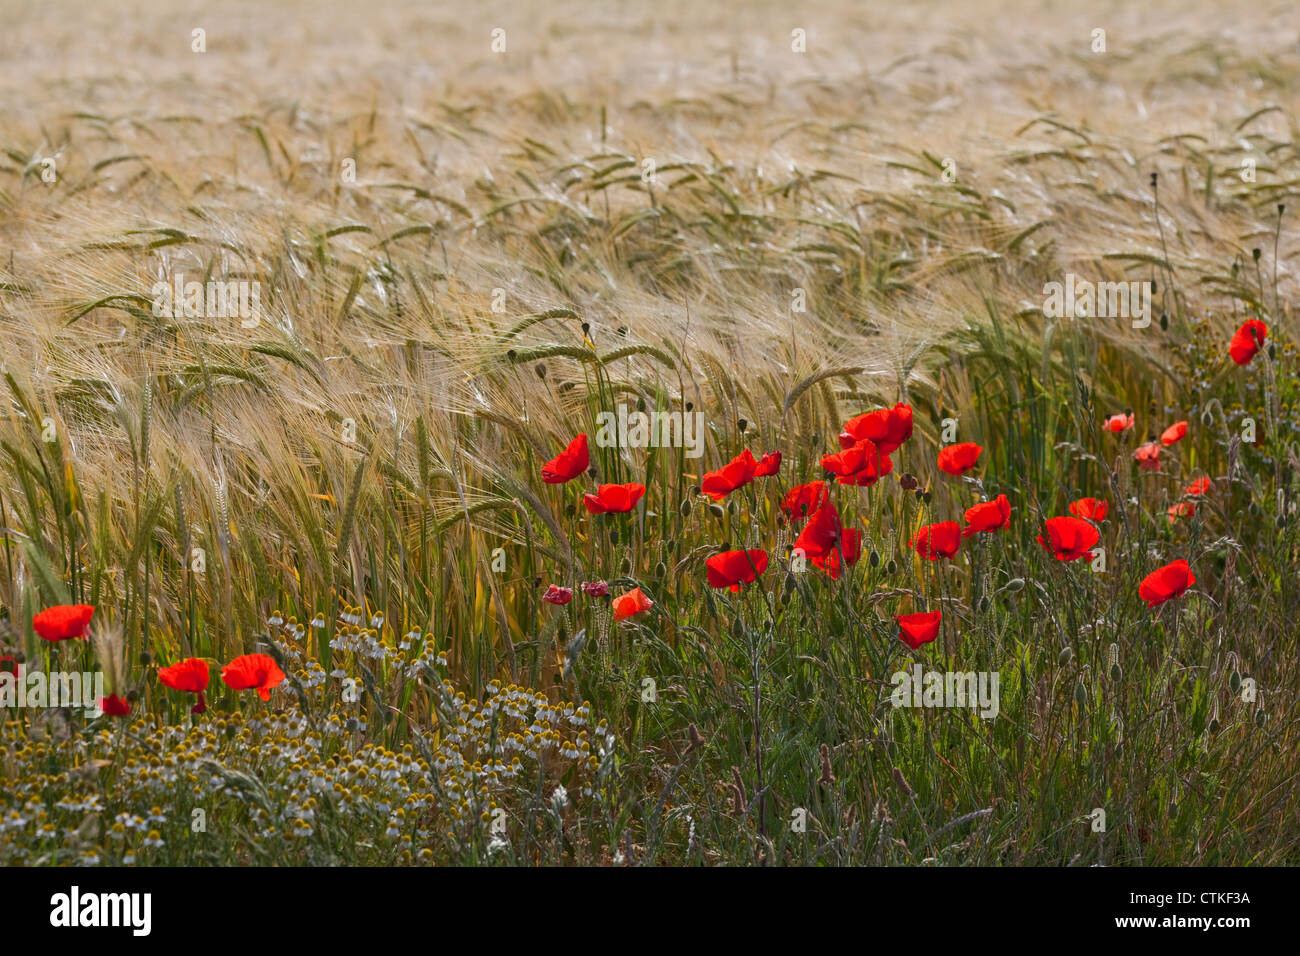 Poppy (Papaver rhoeas). Growing on perimeter of a nearly ripe barley crop. Norfolk. - Stock Photo